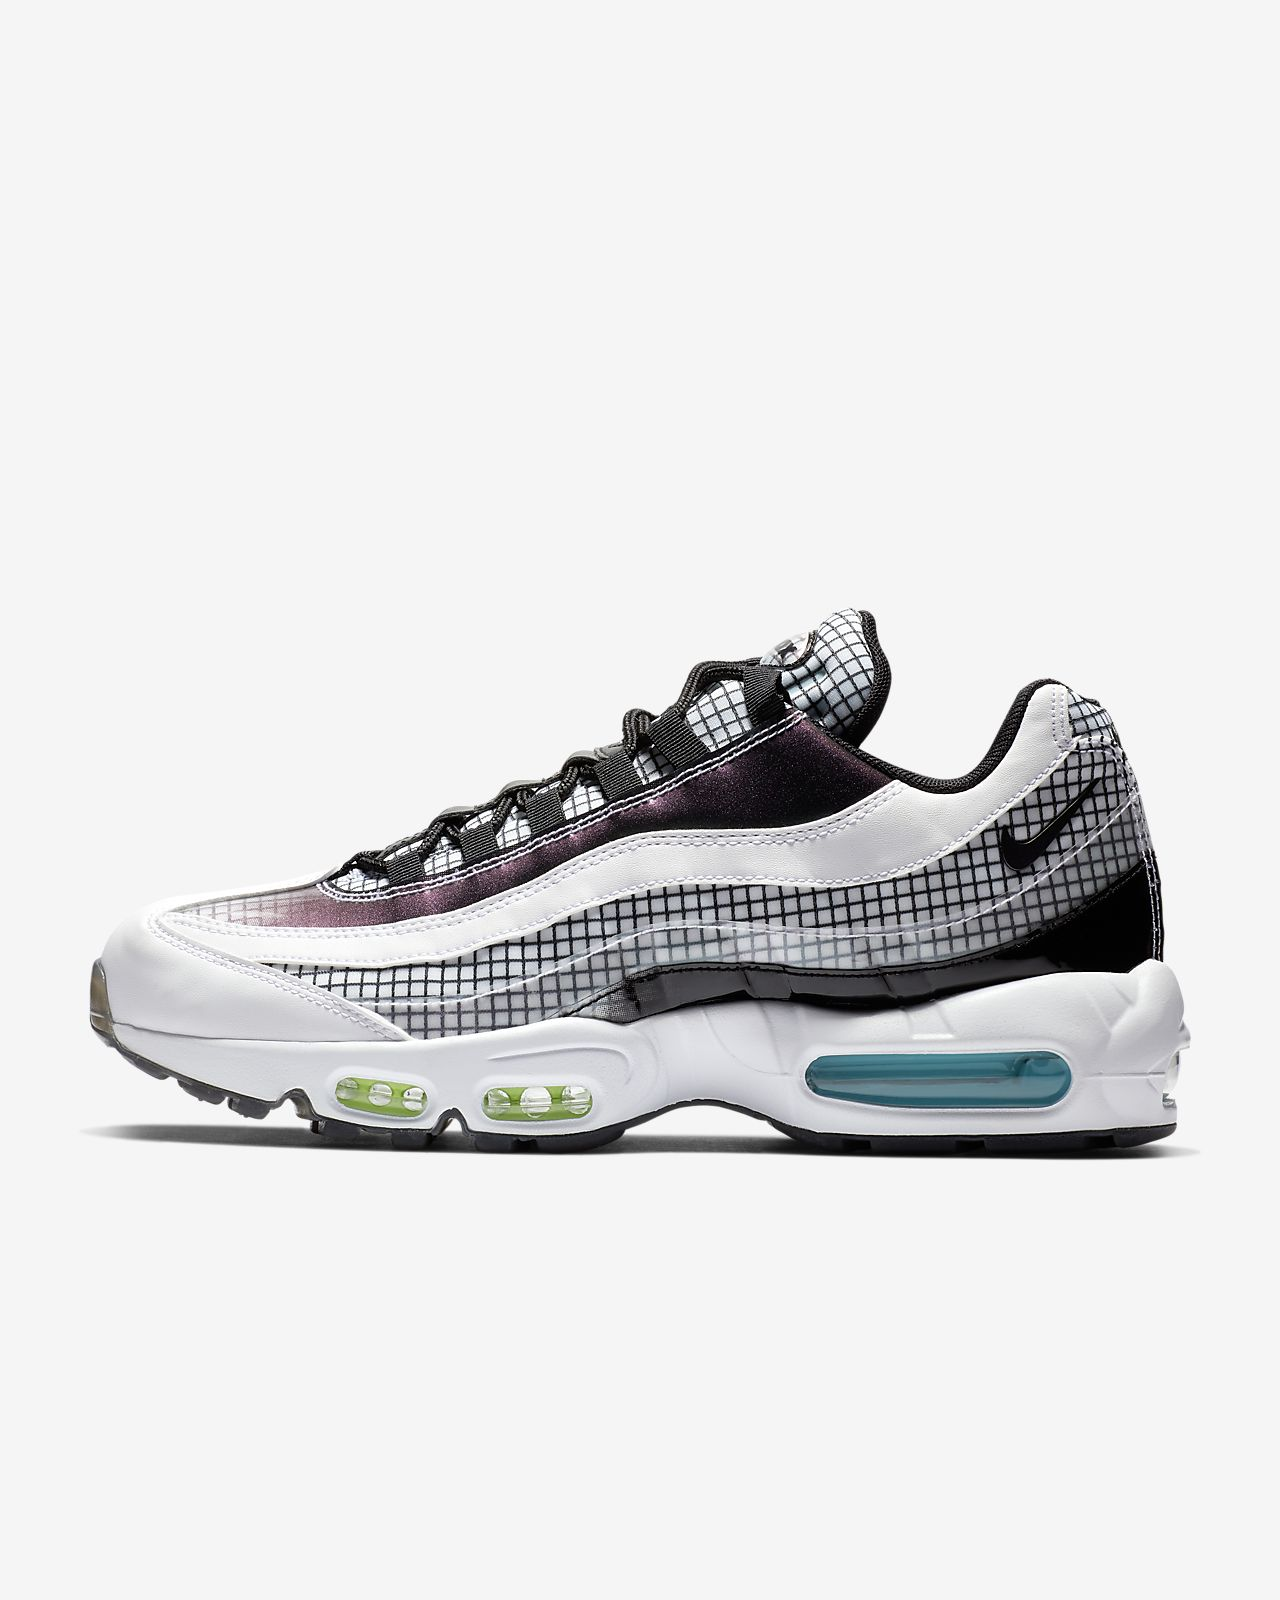 on sale 8ef30 38588 ... Nike Air Max 95 LV8 Men s Shoe